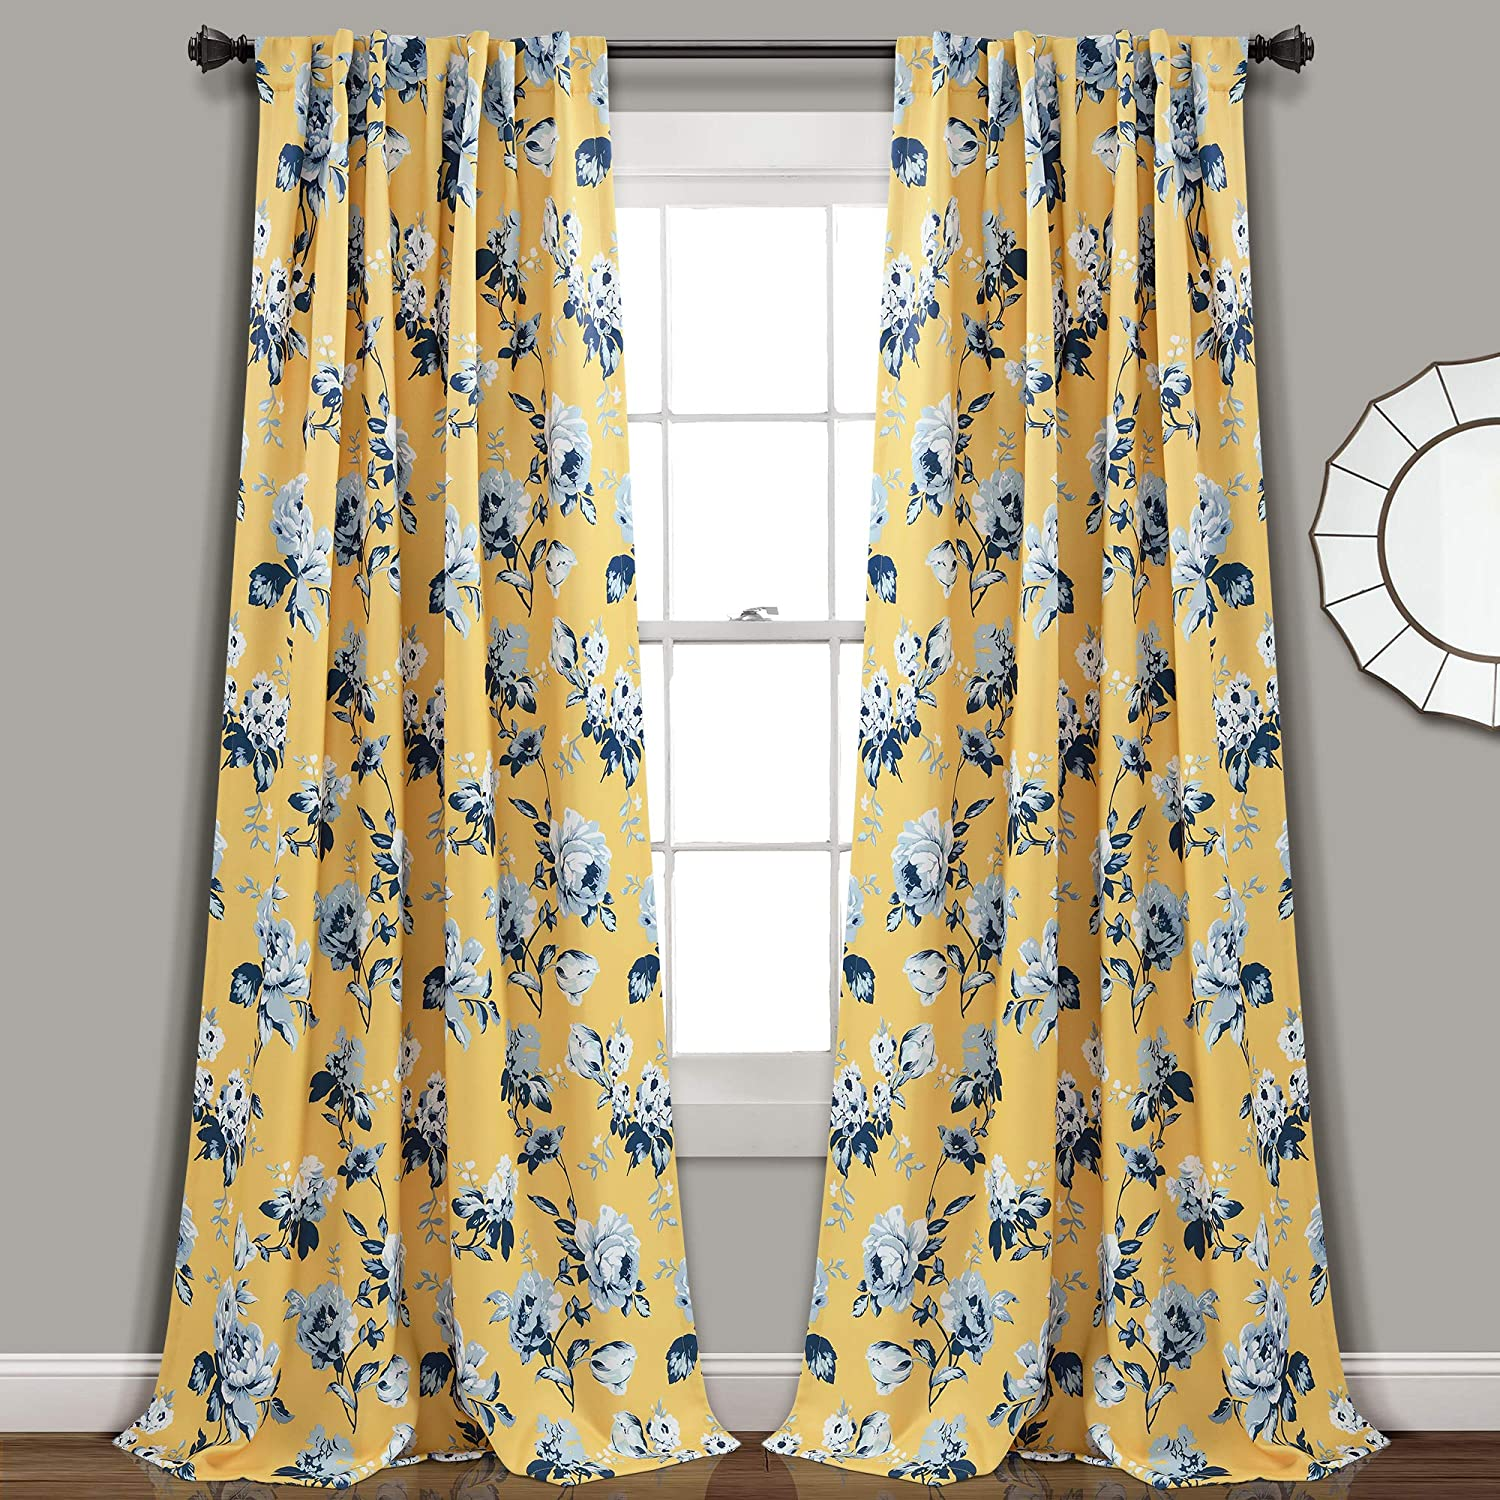 Lush Decor Yellow and Credence Blue Curtains Garden Room Floral Tania Max 60% OFF